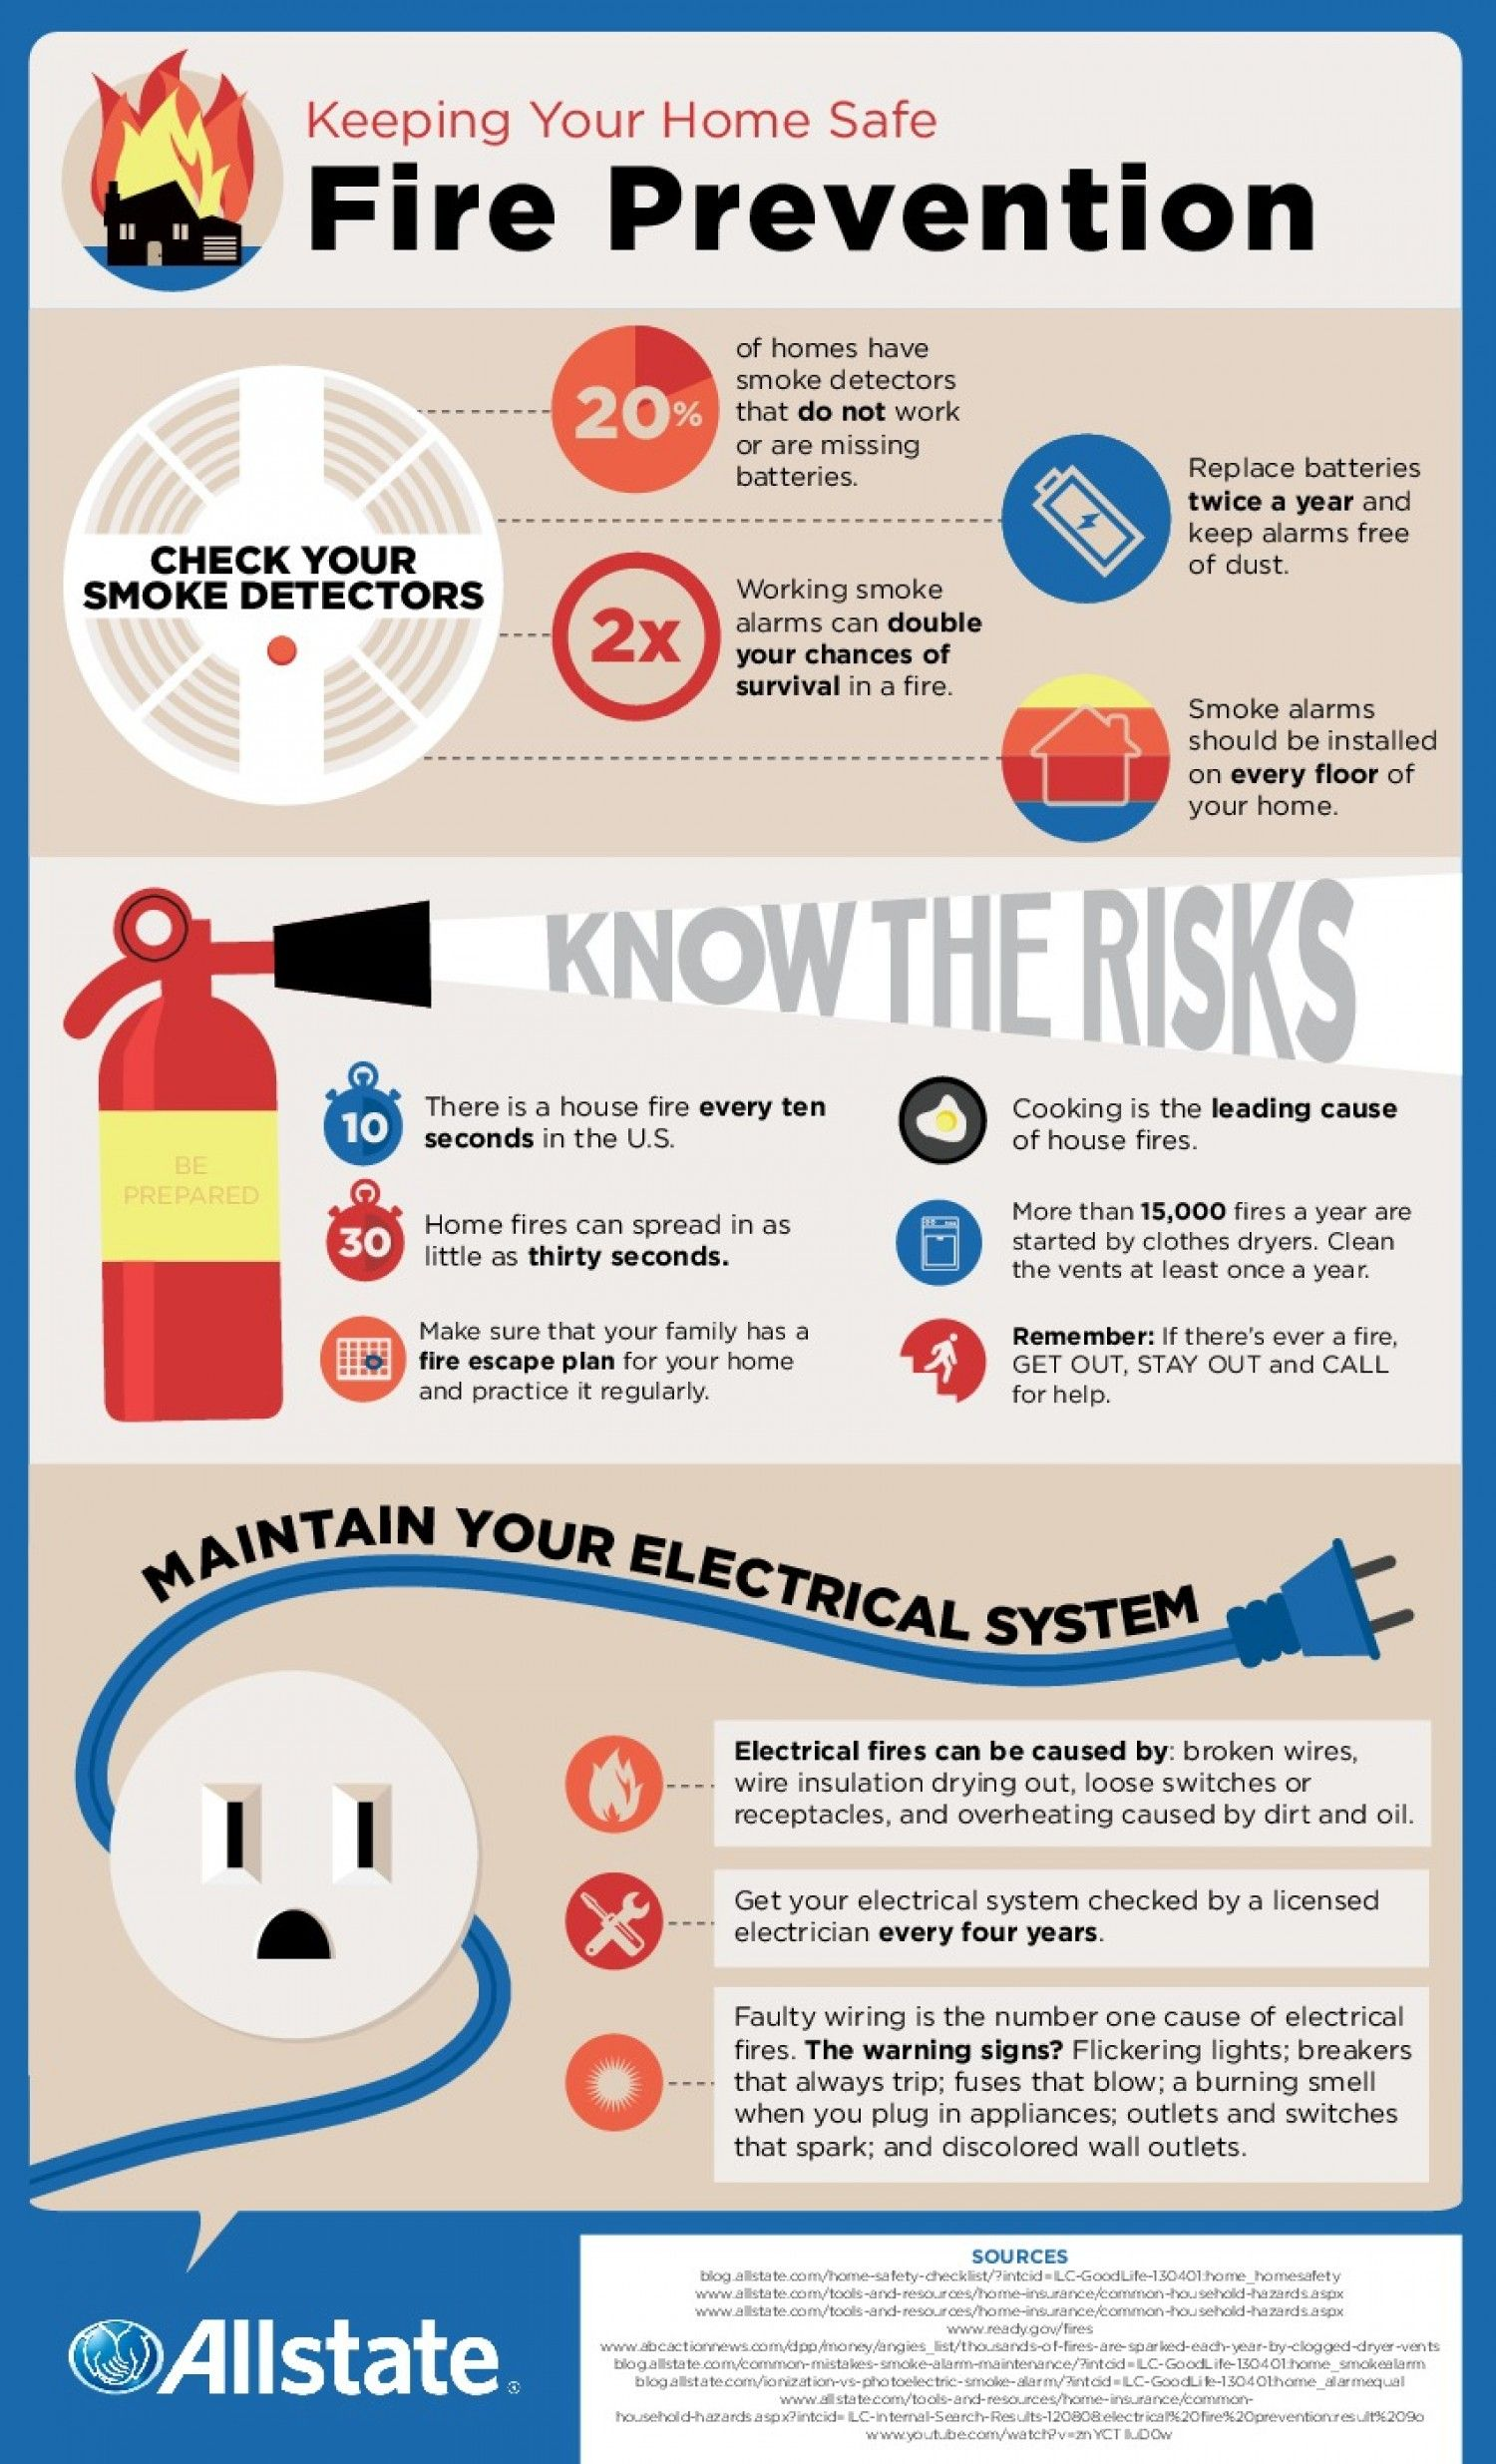 A strong aspect of fire prevention comes from knowing for 6 kitchen safety basics